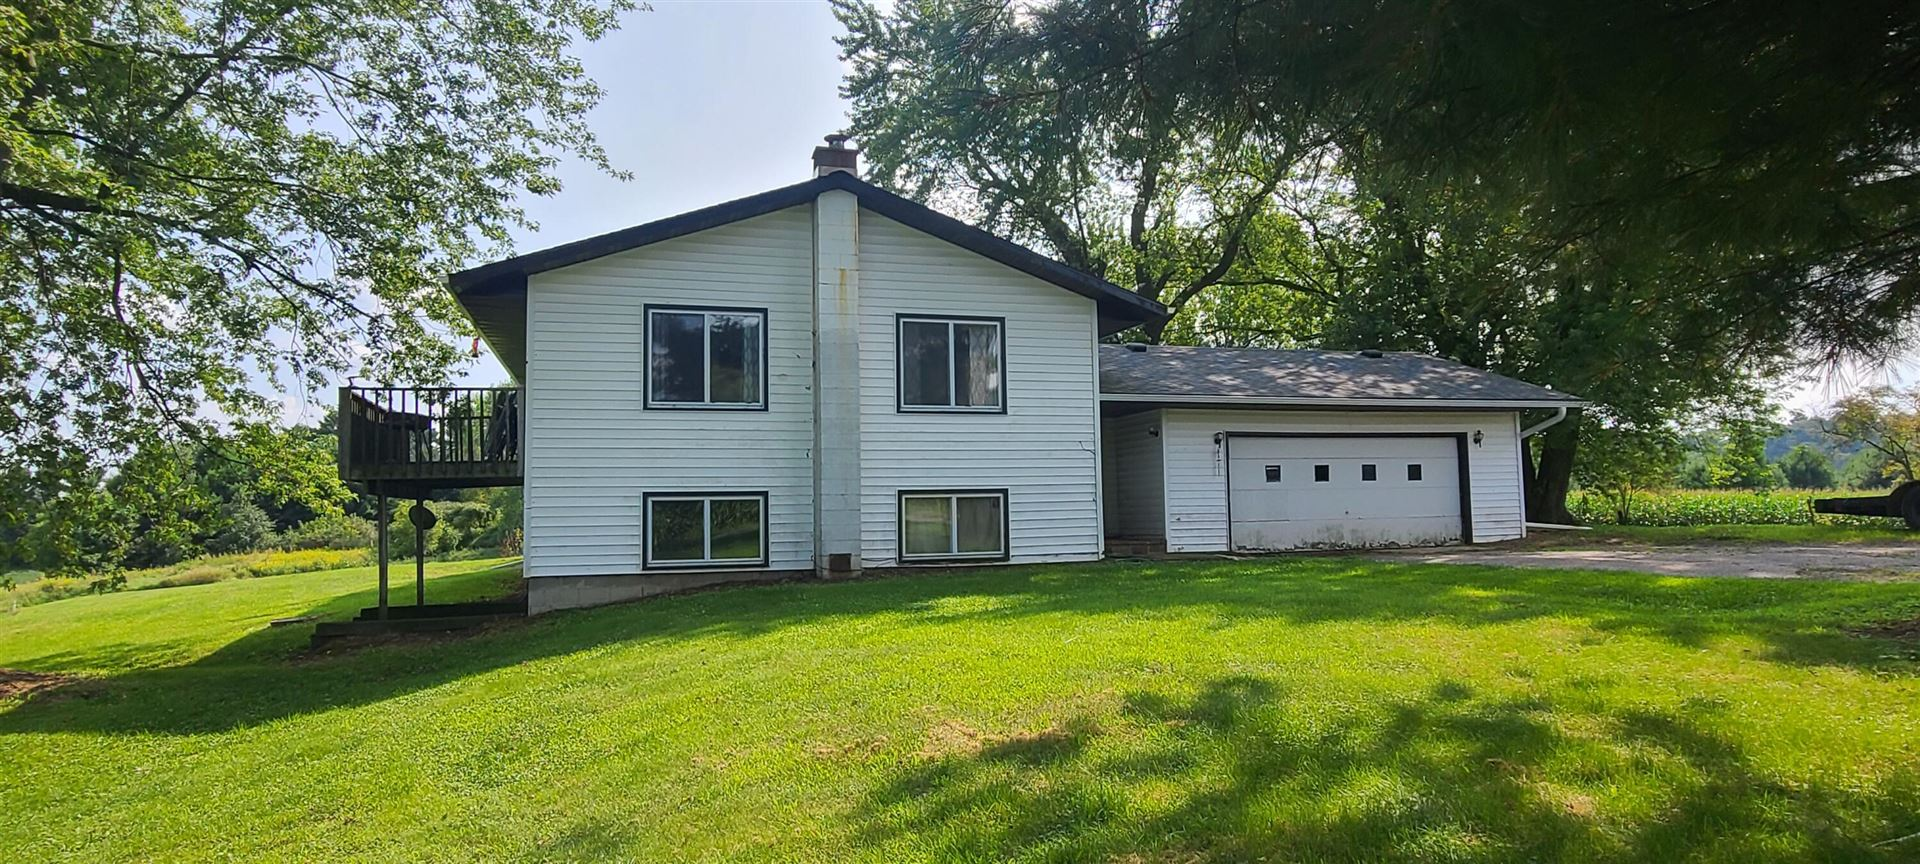 22781 Bluegrass Ave, Lincoln, WI 54666 - MLS#: 1759005